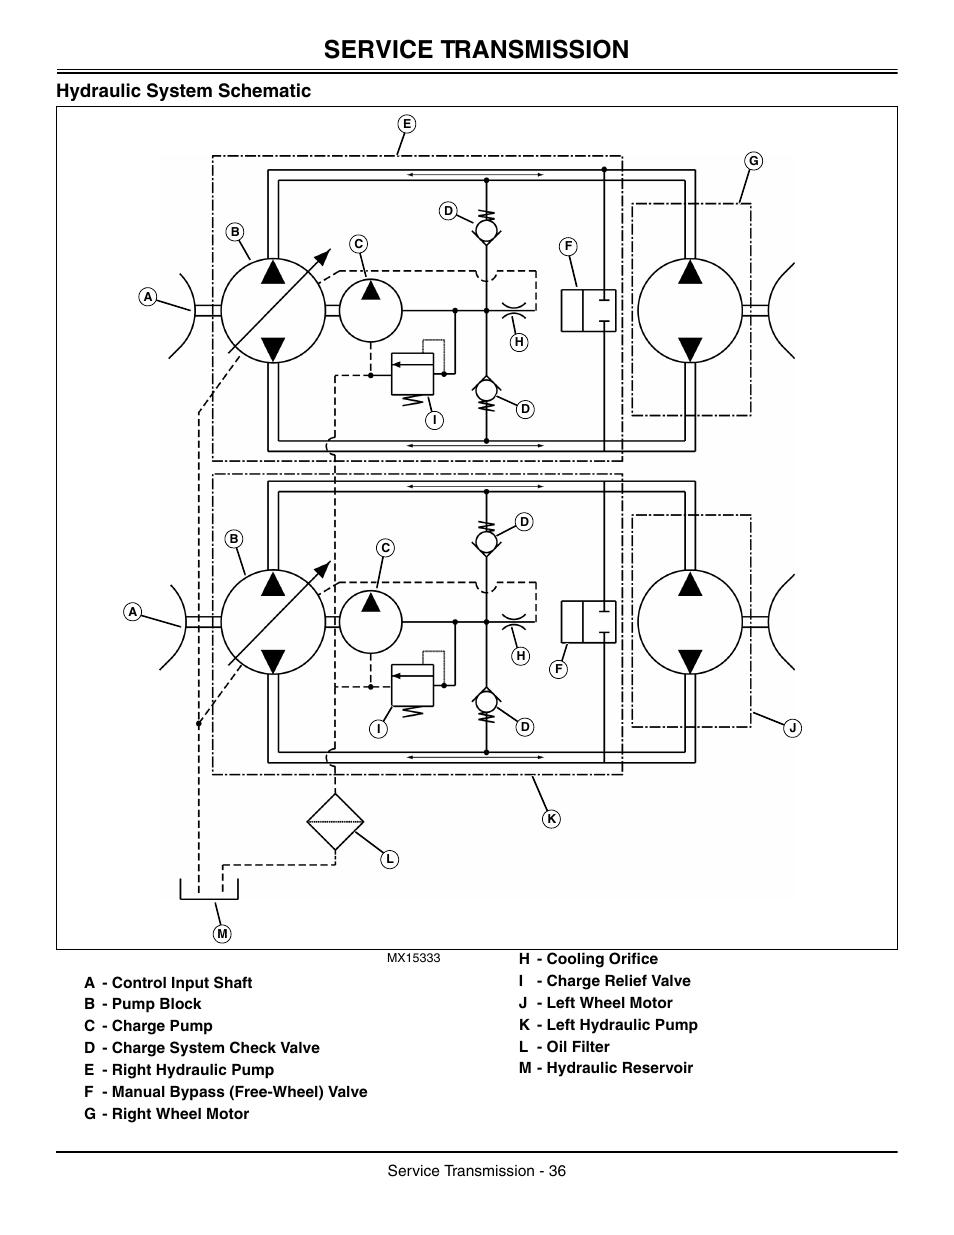 Hydraulic system schematic, Service transmission | Great Dane Chariot /  Chariot LX GDRZ61-27KHE User Manual | Page 40 / 76